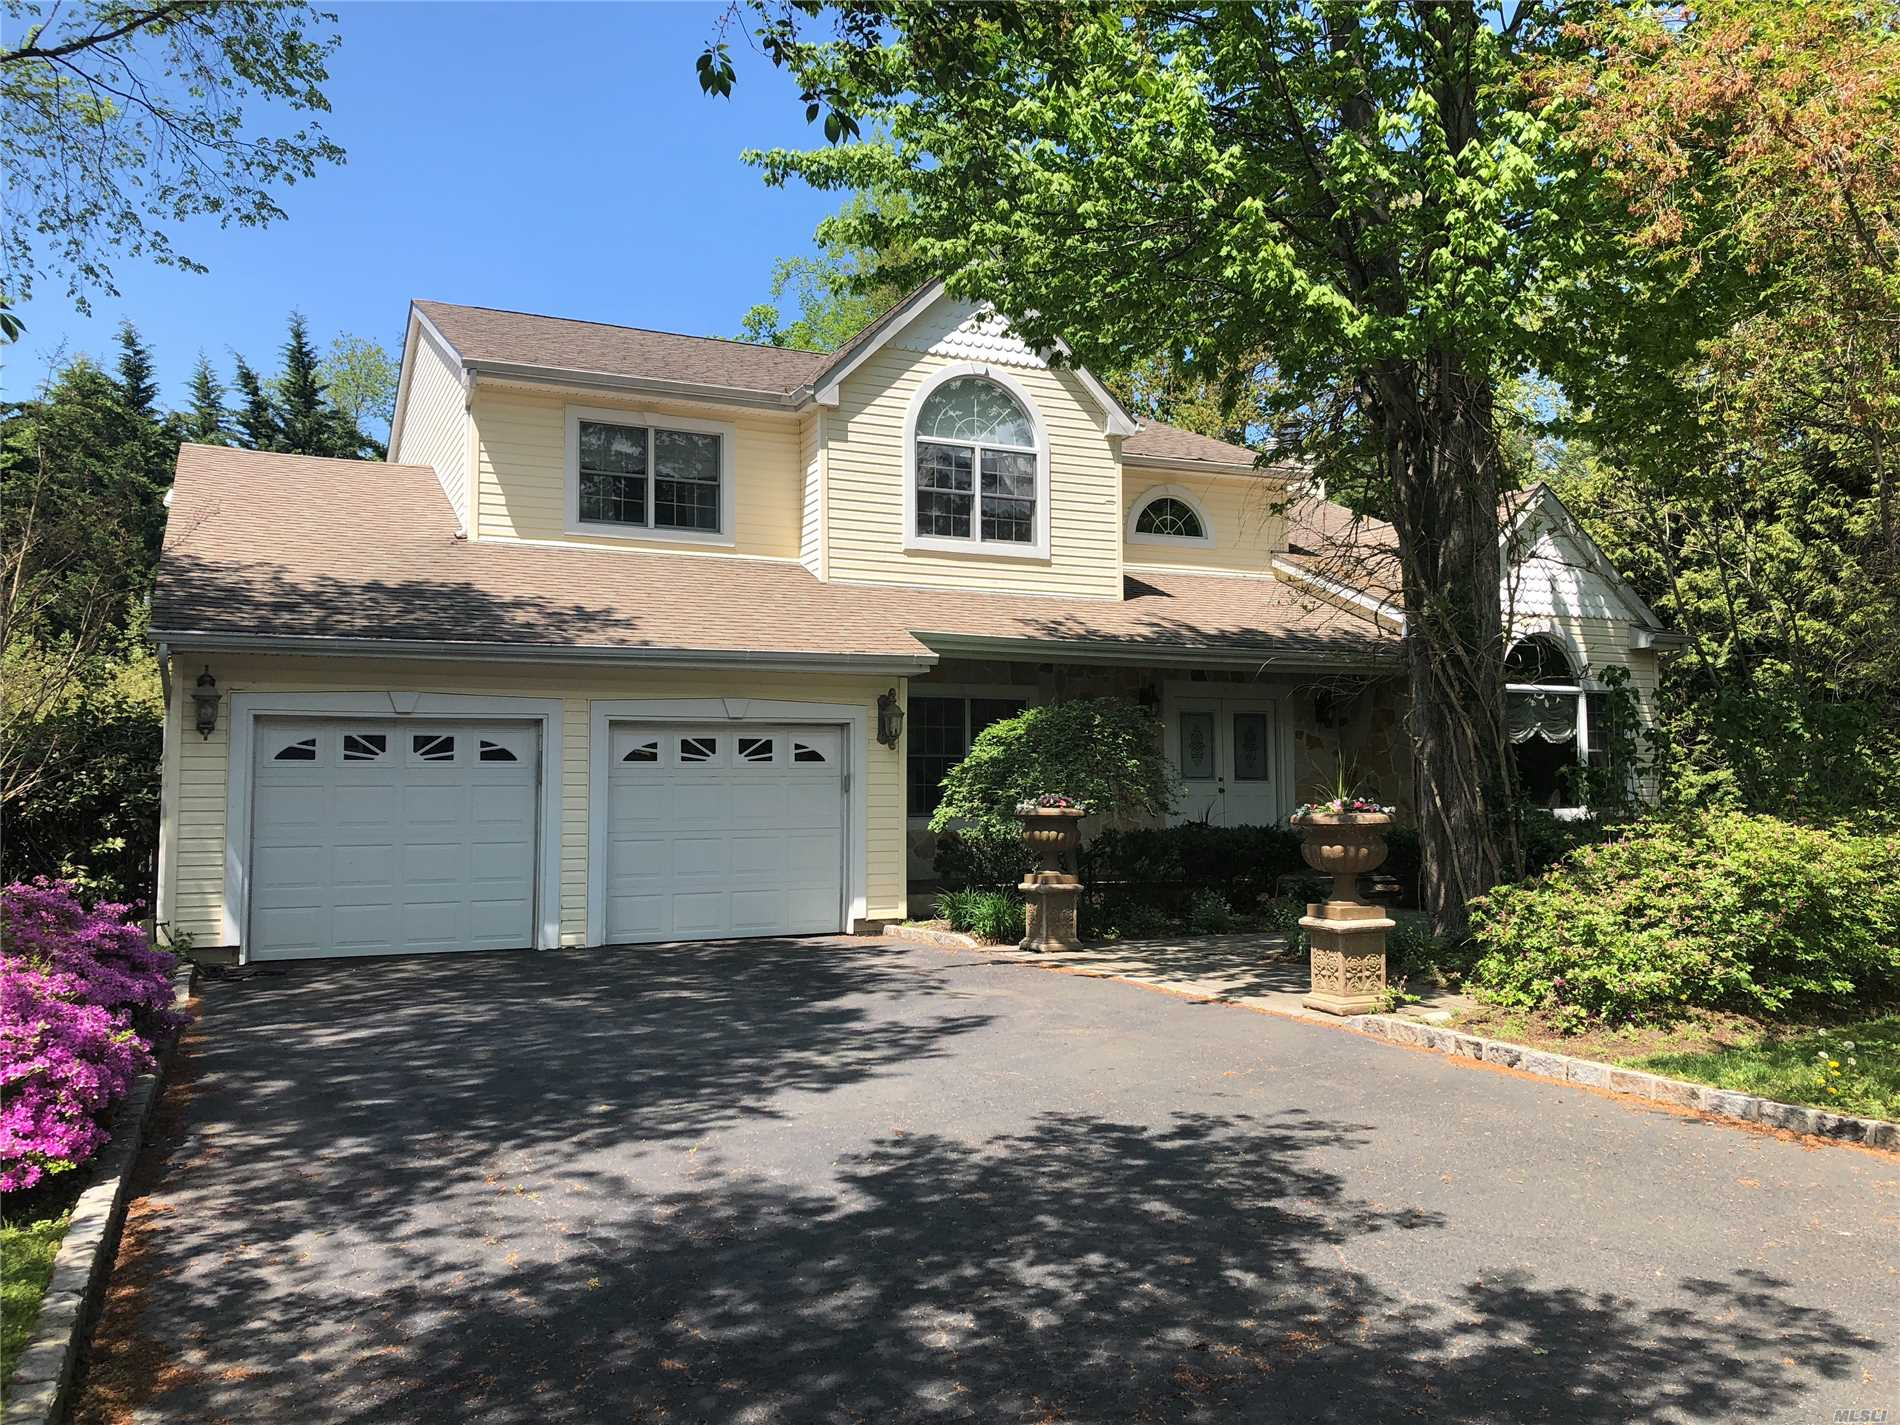 Locust Valley Custom Colonial. Perfectly Located In The Heart Of Town And Close To Shopping, Restaurants, Beaches, Etc. This Unique Home Has It All! It Encompasses A Gold Coast Lifestyle With A Very Charming And Cozy Neighborhood. Plantings And Mature Trees Set The Mood For Privacy W/An In-Ground Salt Water Heated Pool.